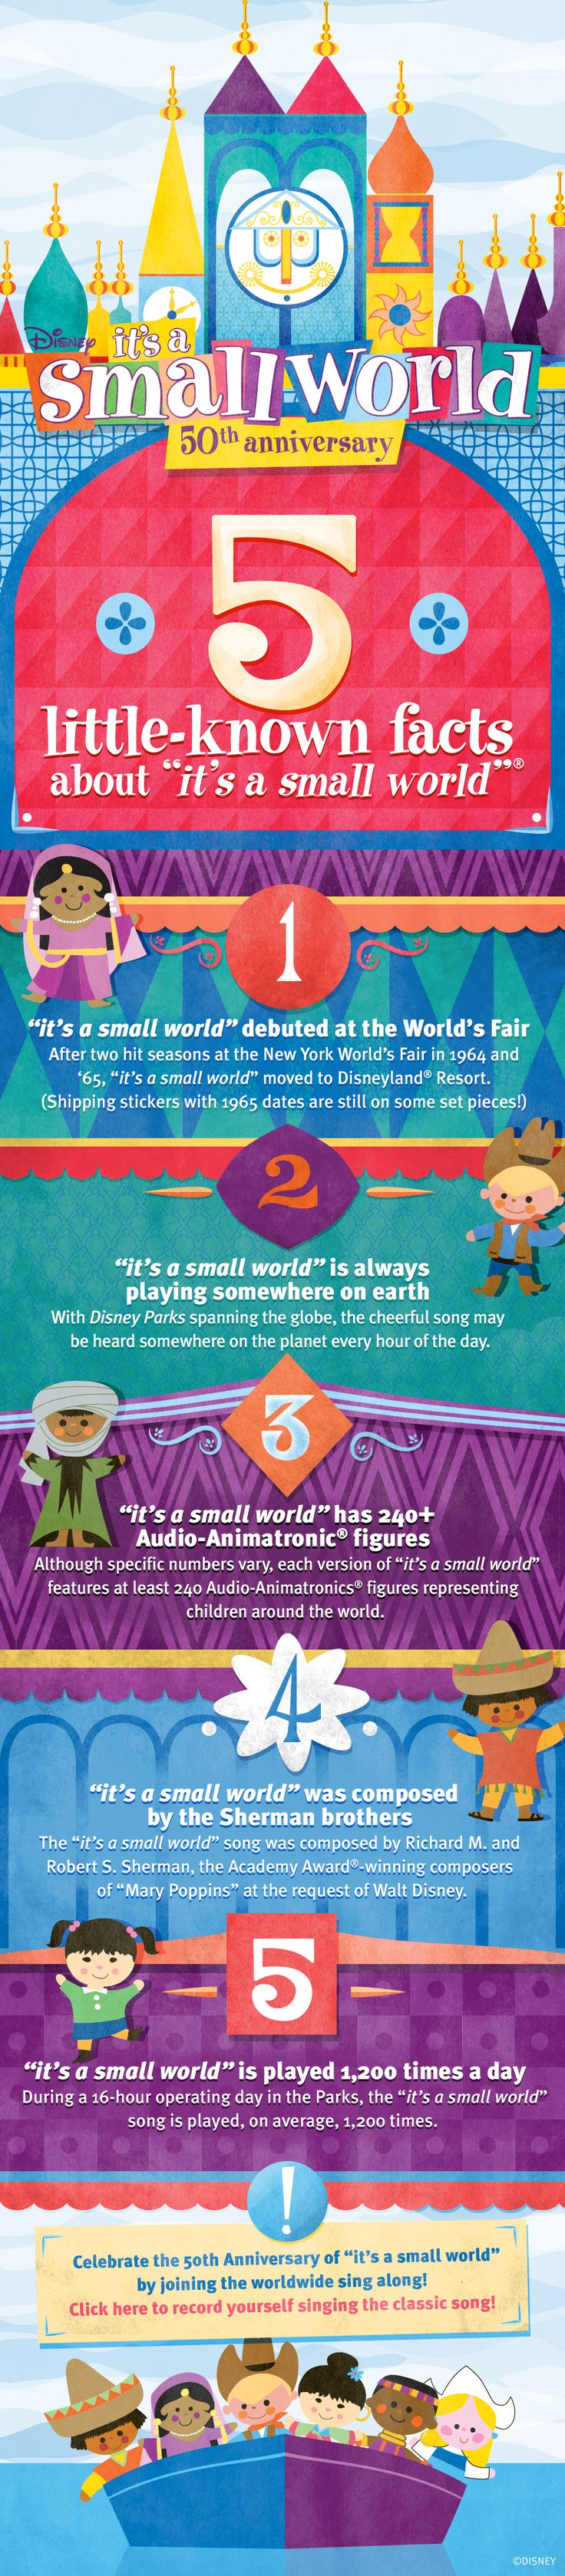 """5 little-known facts about """"it's a small world"""" Celebrate the 50th Anniversary of """"it's a small world"""" by joing the worldwide sign along! #SmallWorld50 #WaltDisneyWorld"""